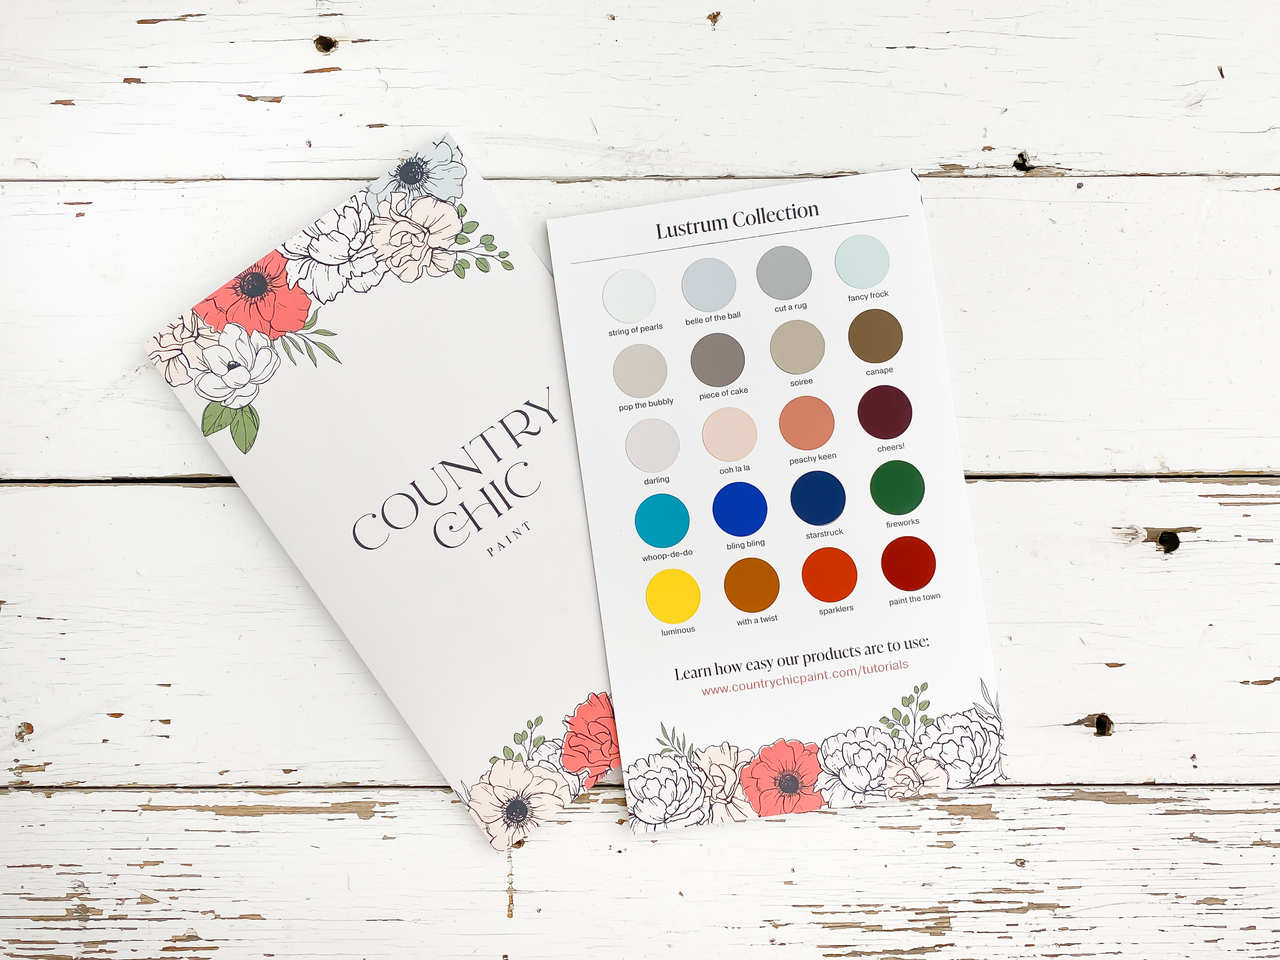 Front and back View of Country Chic Paint Hand Painted Color Card